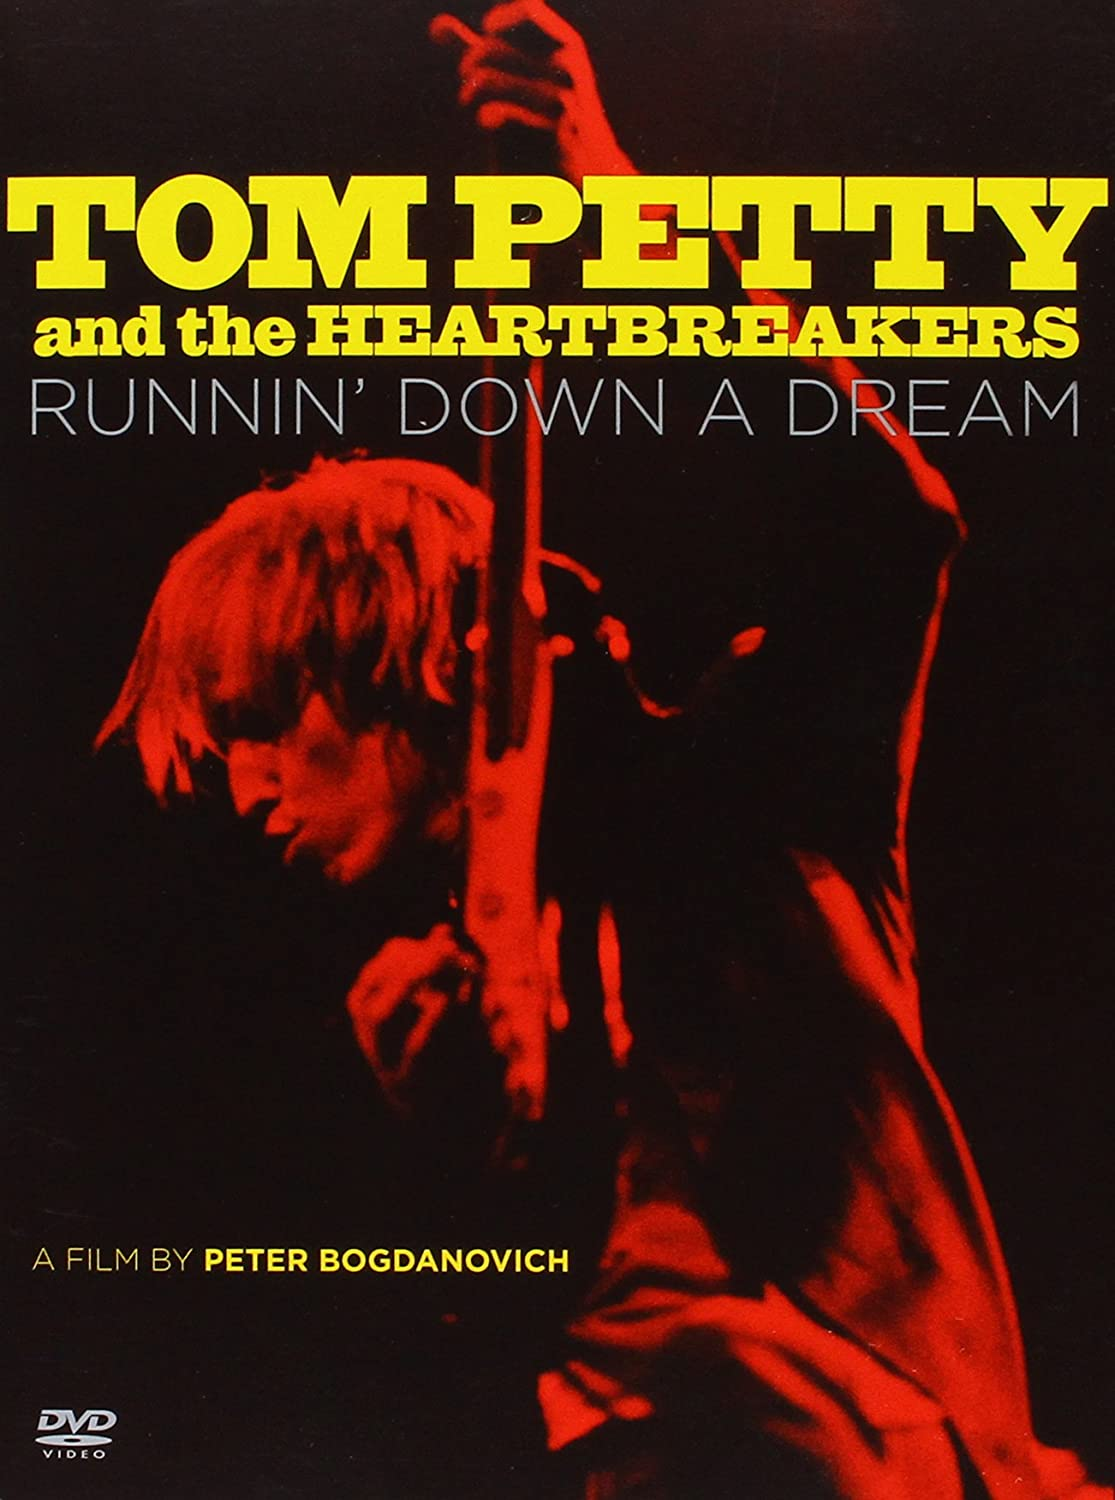 Amazon.com: Tom Petty and the Heartbreakers: Runnin' Down a Dream (Limited Edition): Tom Petty and the Heartbreakers, Peter Bogdanovich, George Harrison, ...